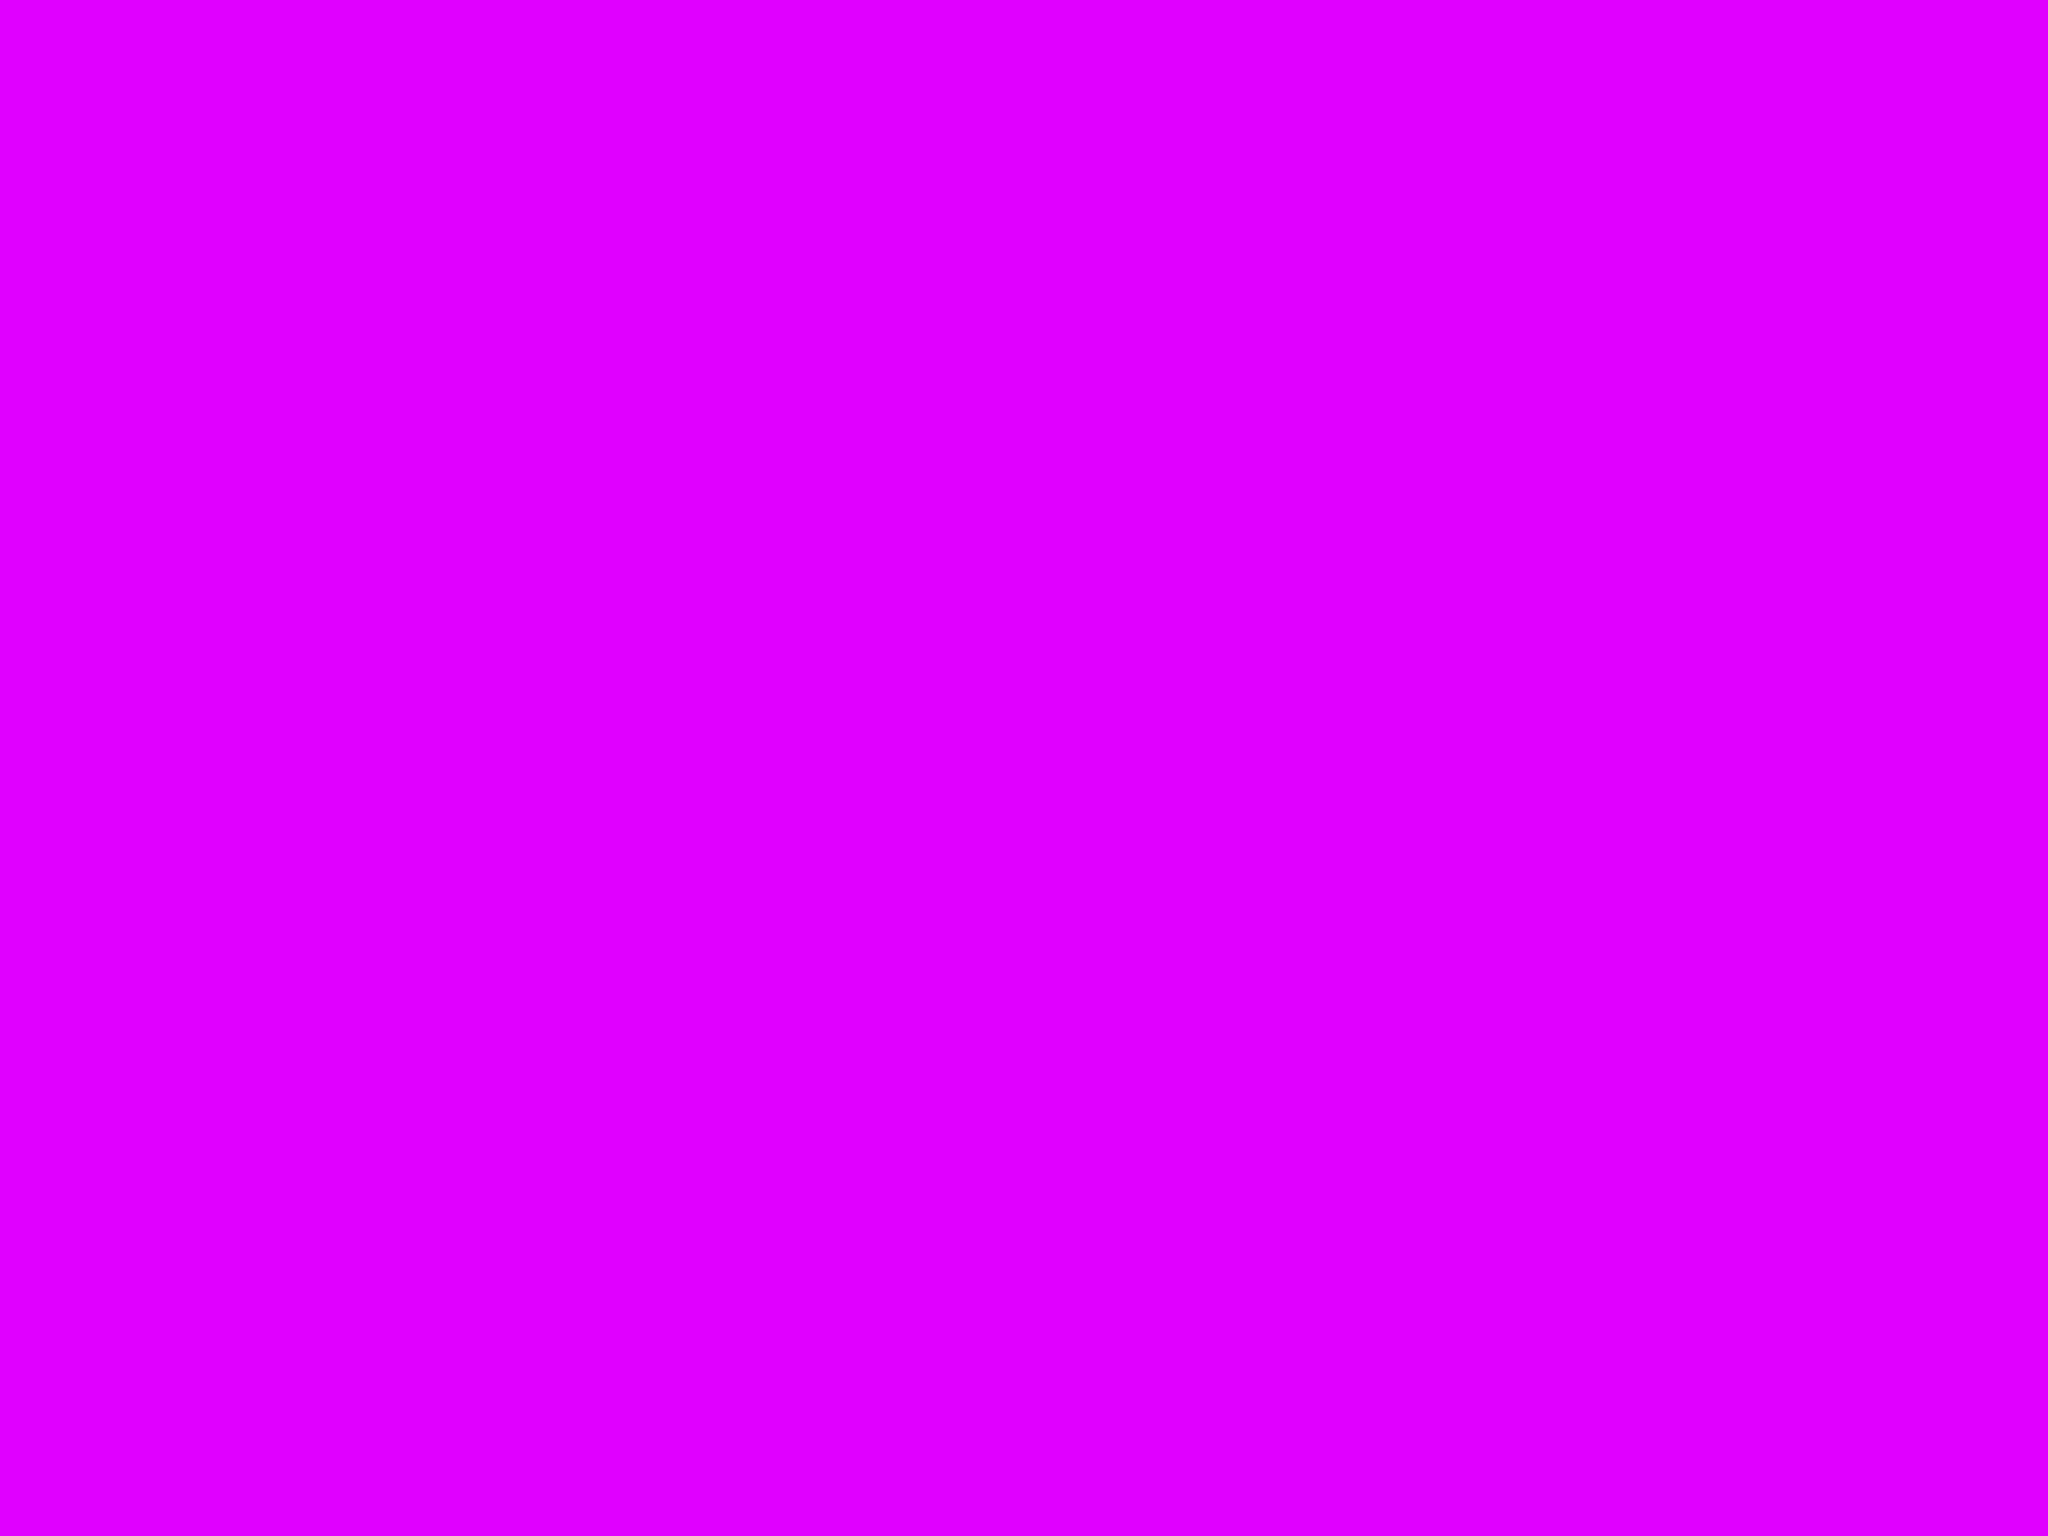 2048x1536 Psychedelic Purple Solid Color Background